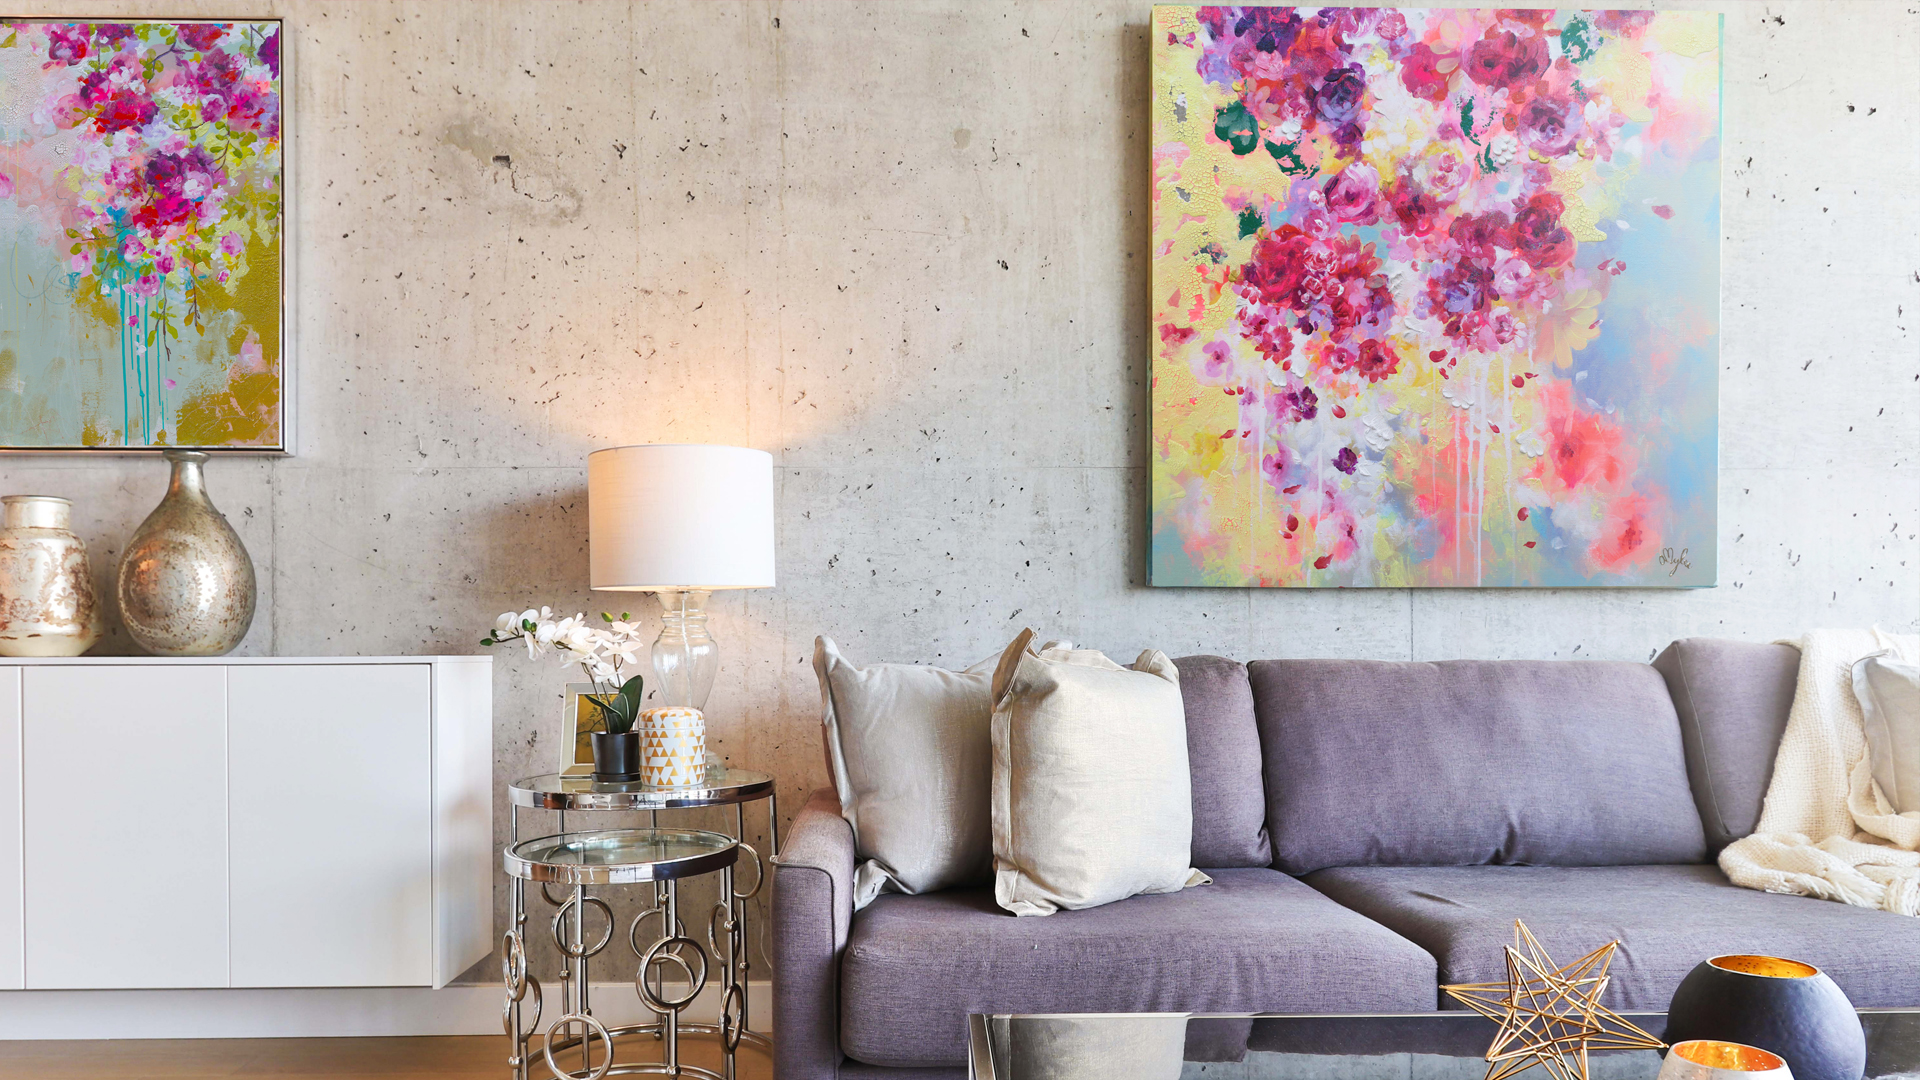 Living with Art - Vibrant